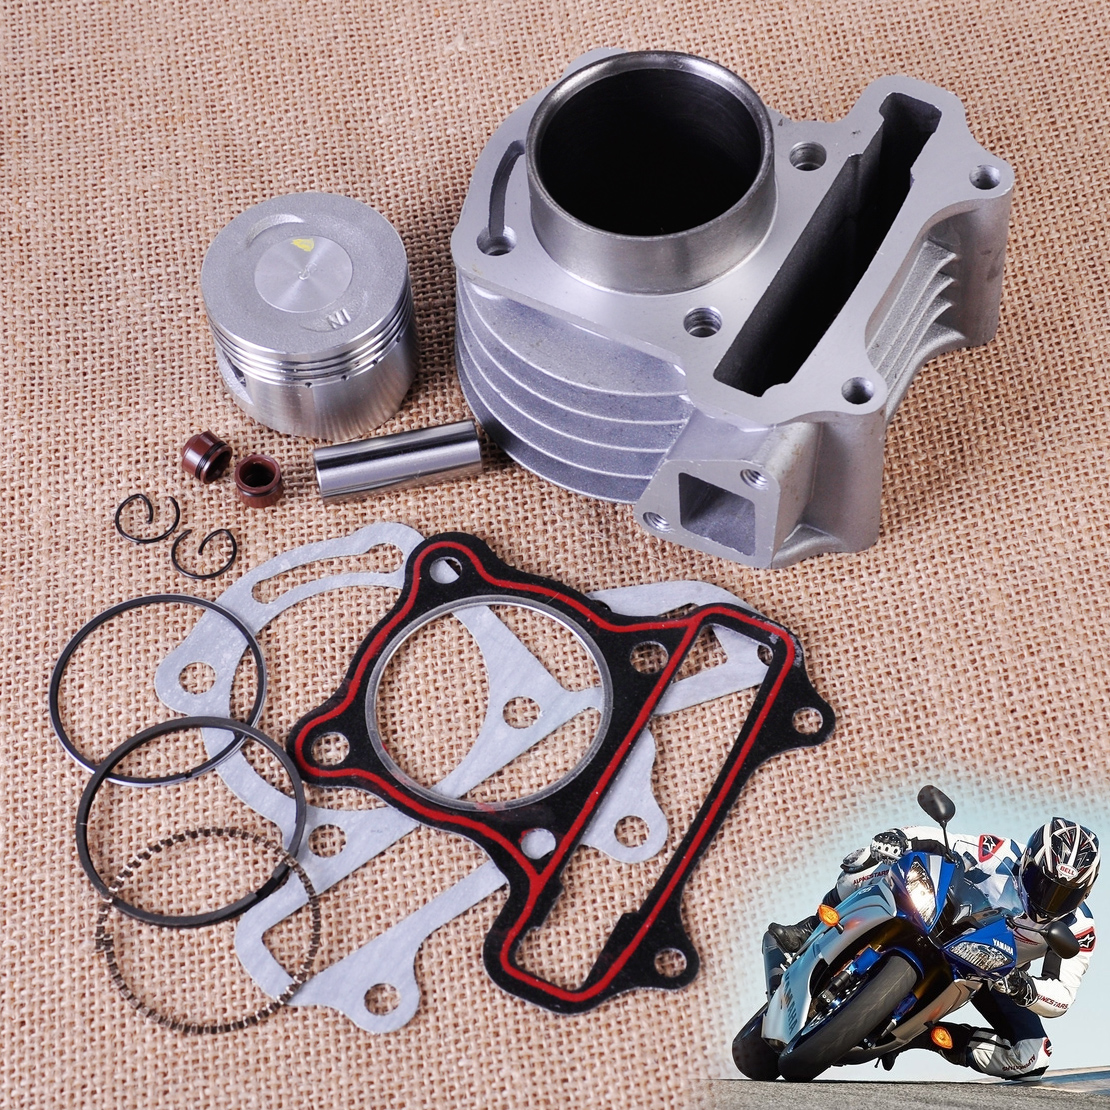 DWCX 47mm Big Bore Kit Cylinder Piston Rings fit for GY6 50cc to 80cc 4 Stroke Scooter Moped ATV with 139QMB 139QMA engine image